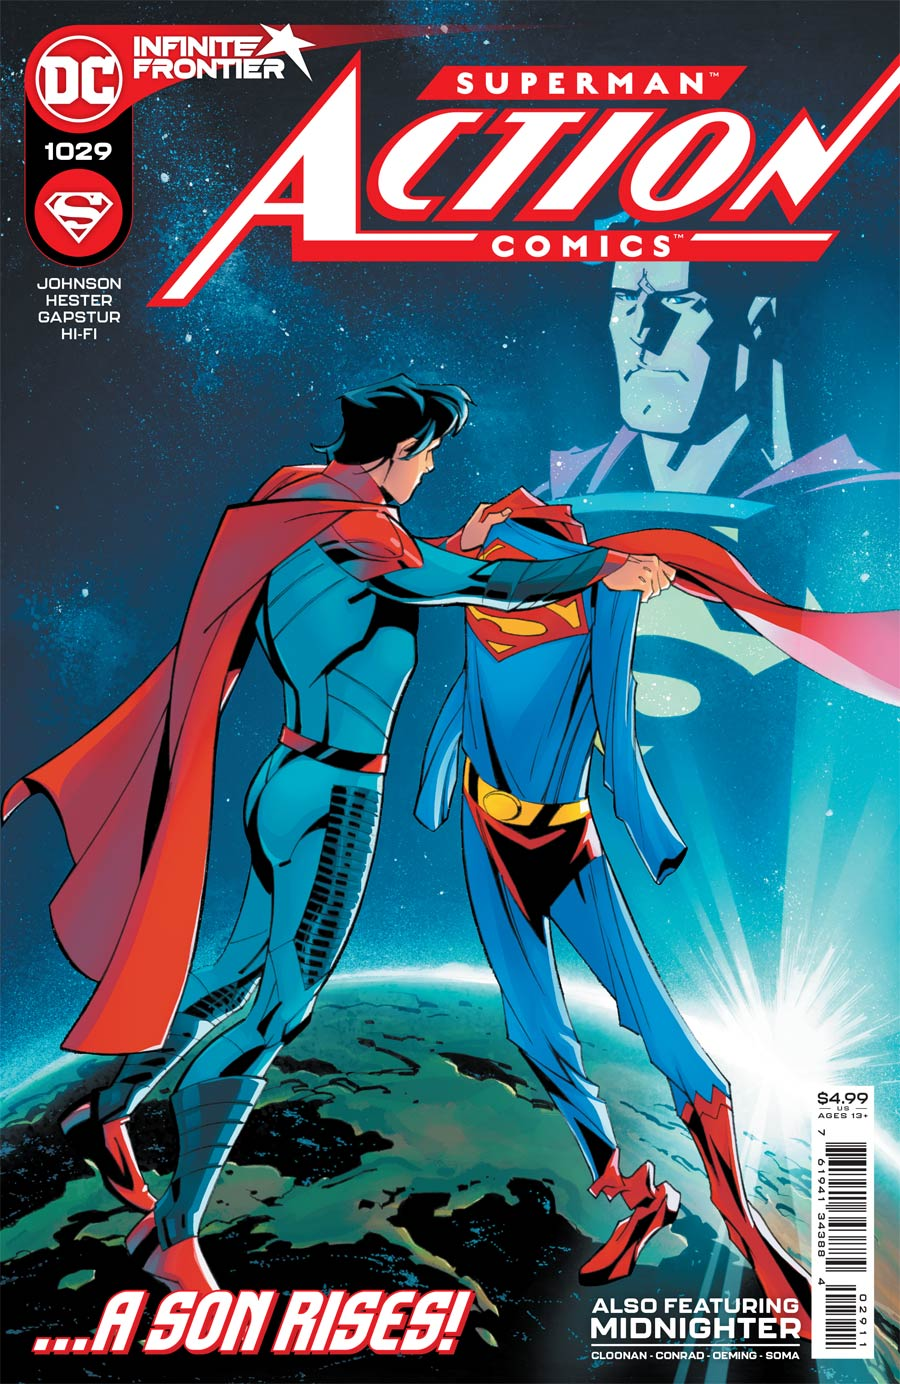 Action Comics Vol 2 #1029 Cover A Regular Phil Hester & Eric Gapstur Cover